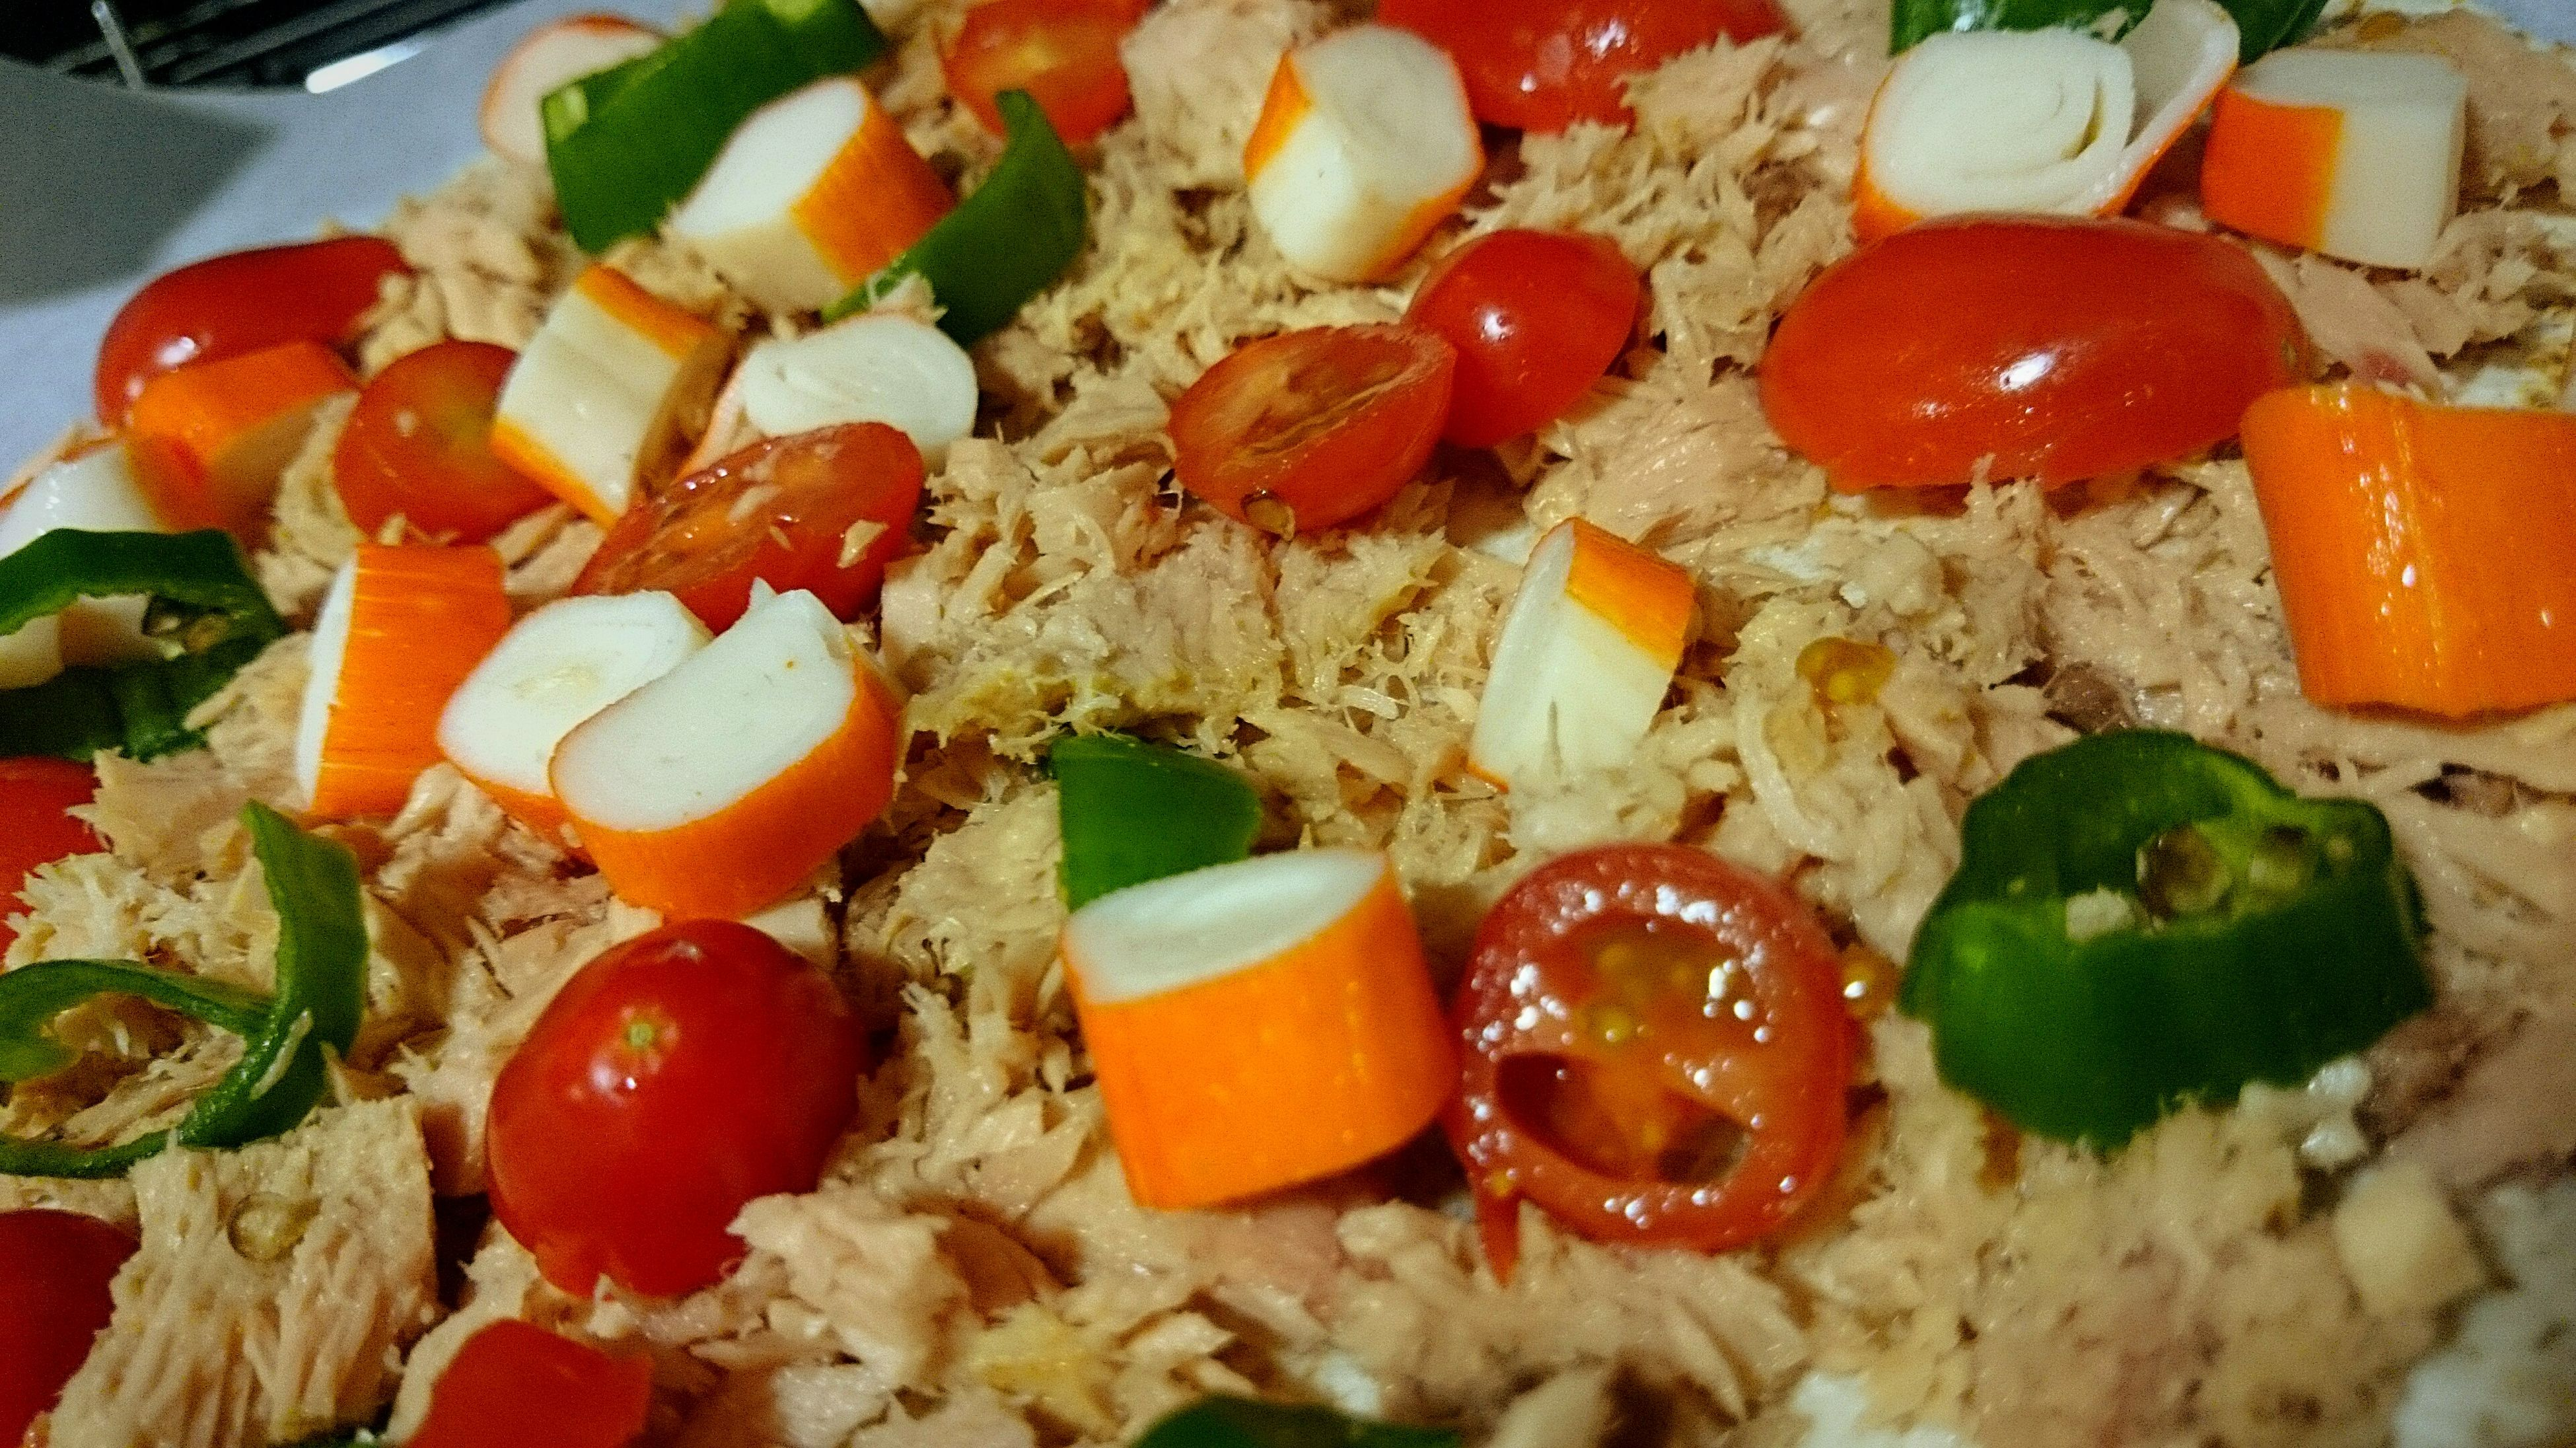 Fajipizza Fit Life Style Eating Protein Vegetables Healthy Food Healthy Lifestyle. :) Eating Healthy Eating FajiPizza